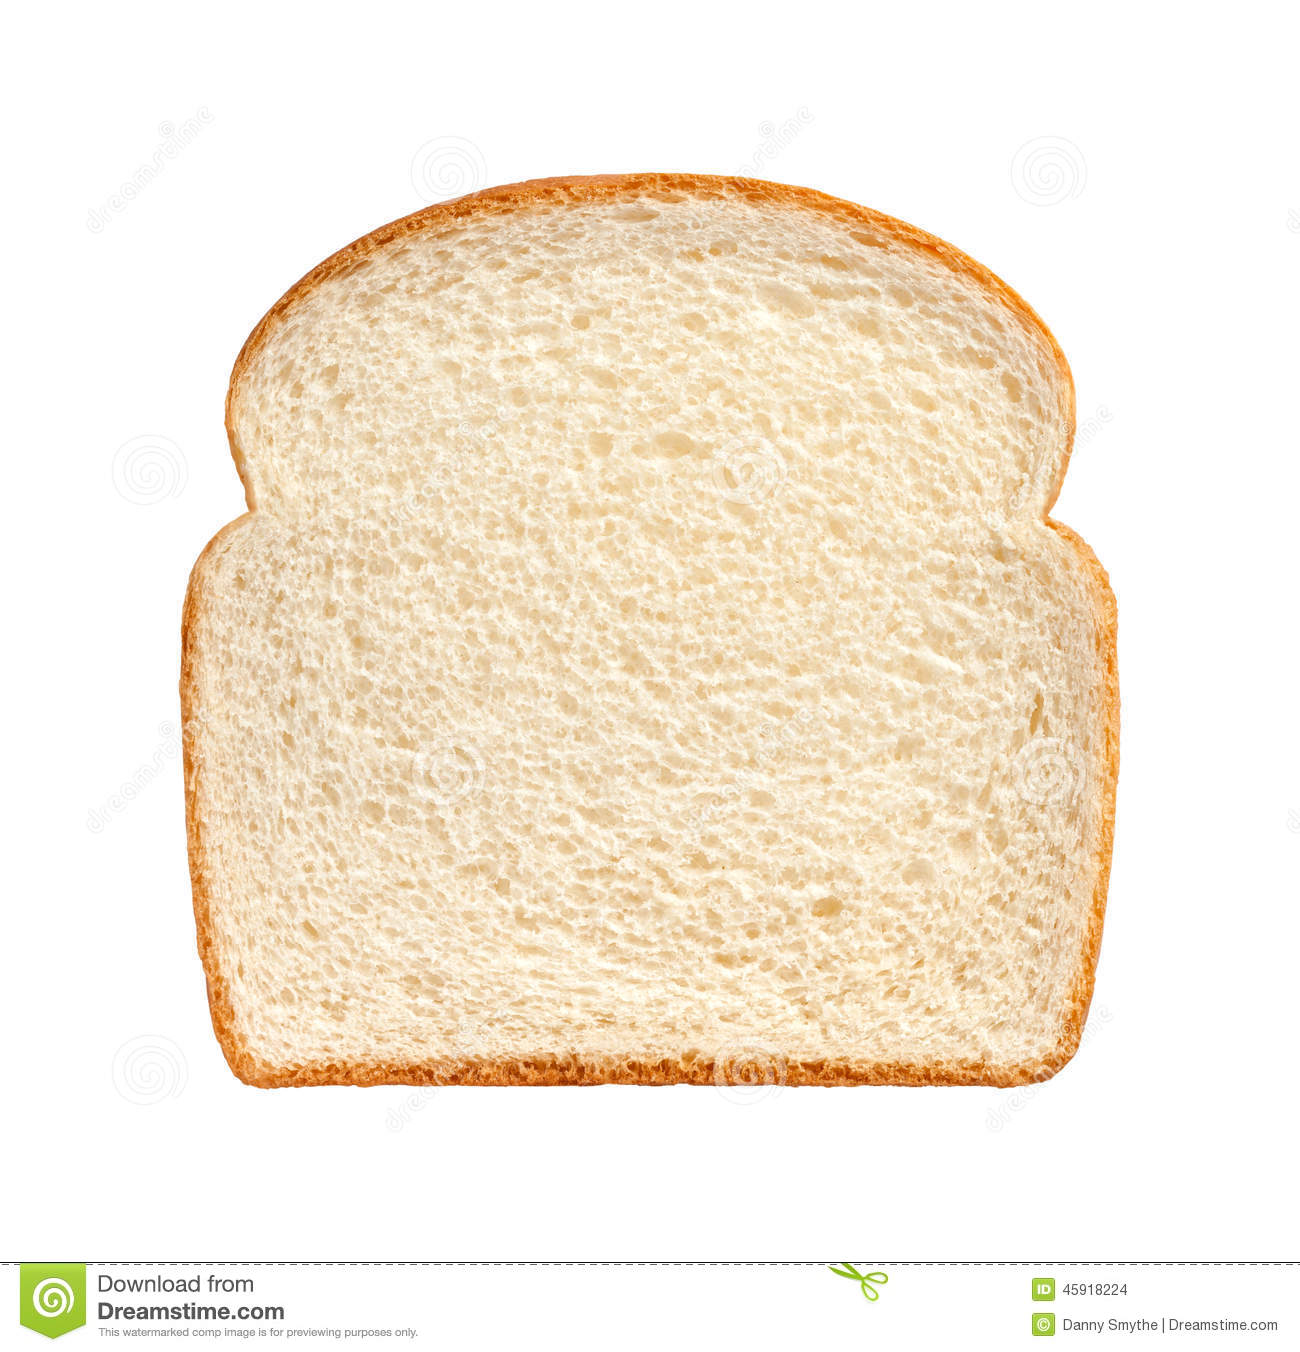 Bread Png : Use these free bread png #32 for your personal projects or designs.